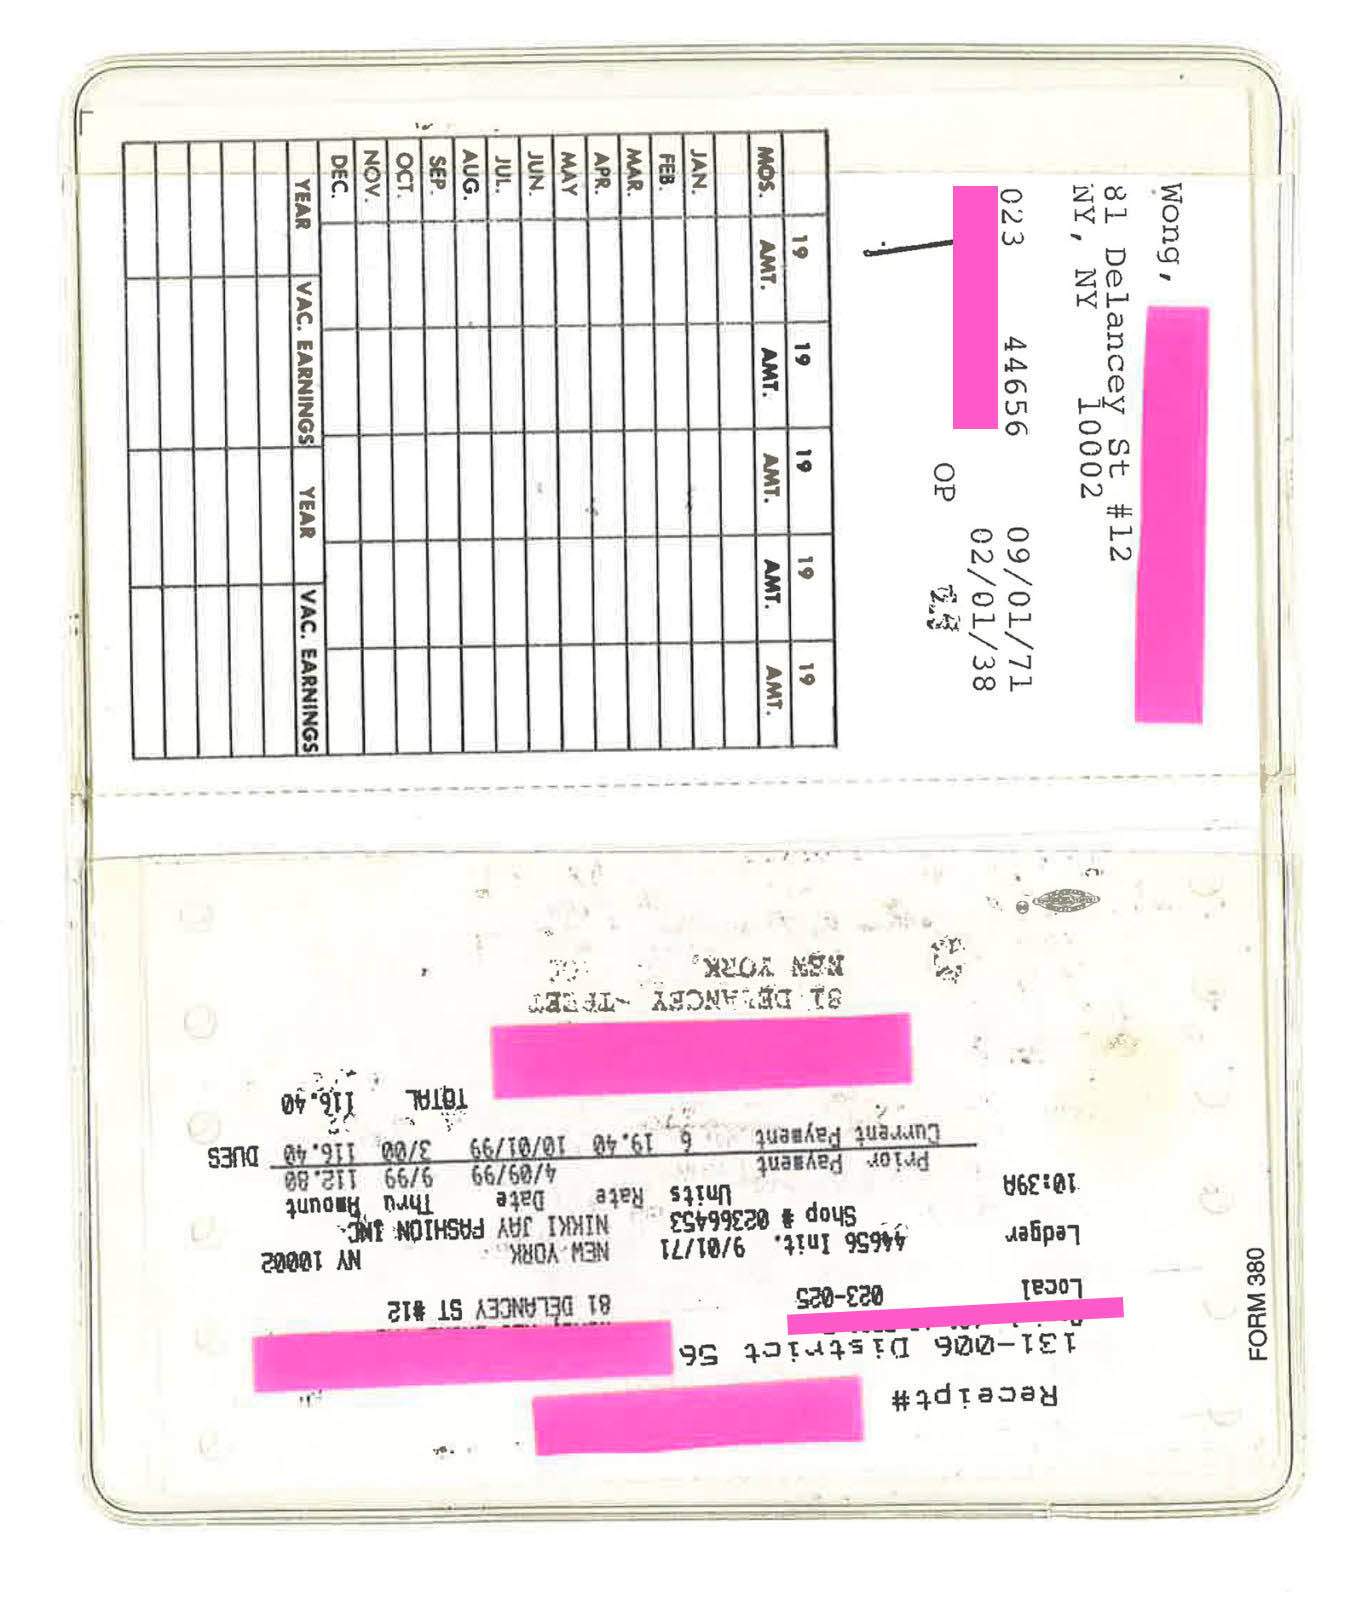 Old union card showing some of Mrs. Wong's personal information